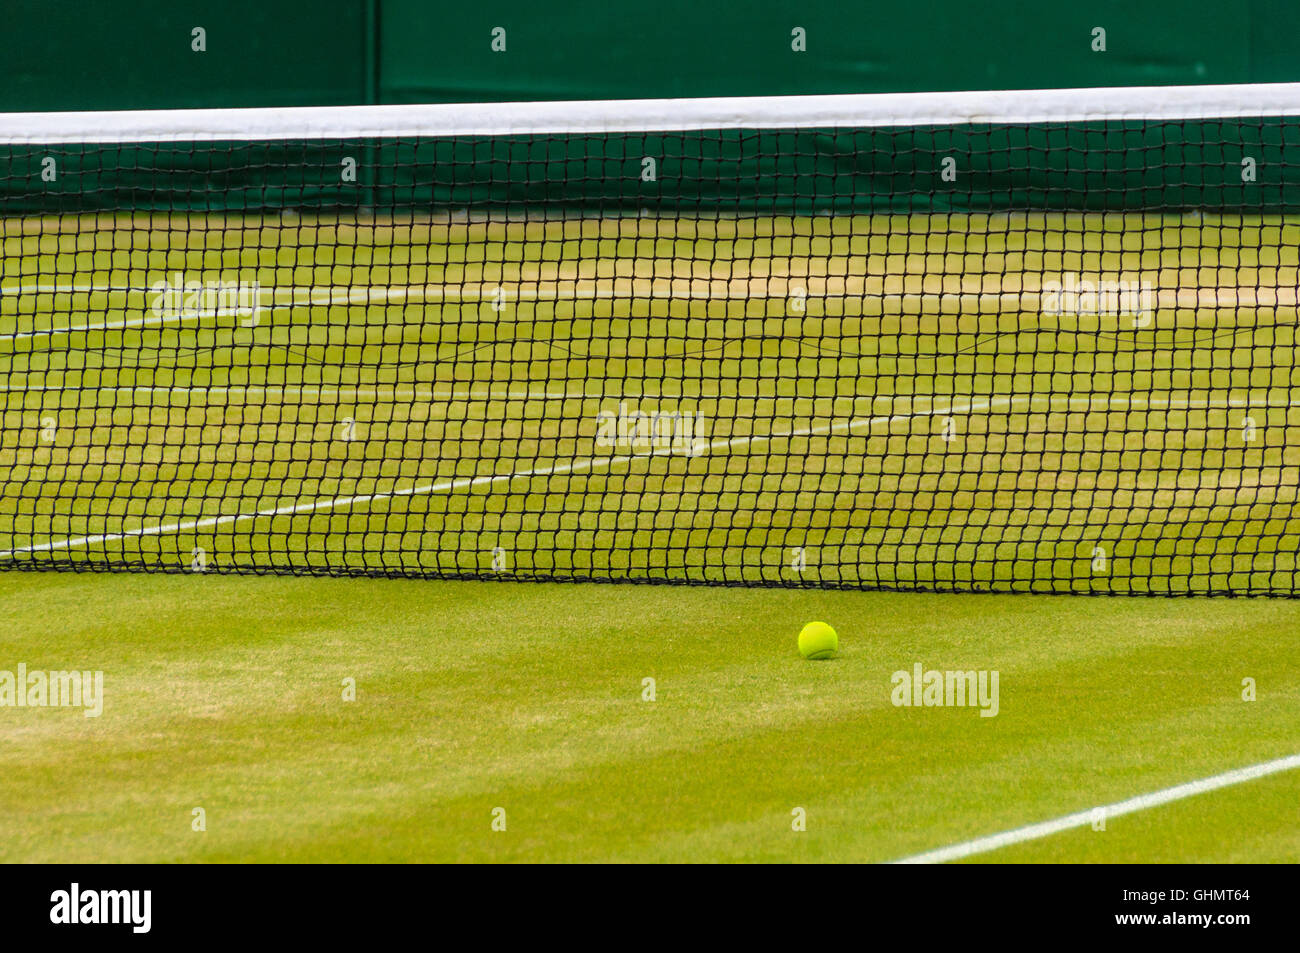 Tennis ball on a lawn tennis court - Stock Image